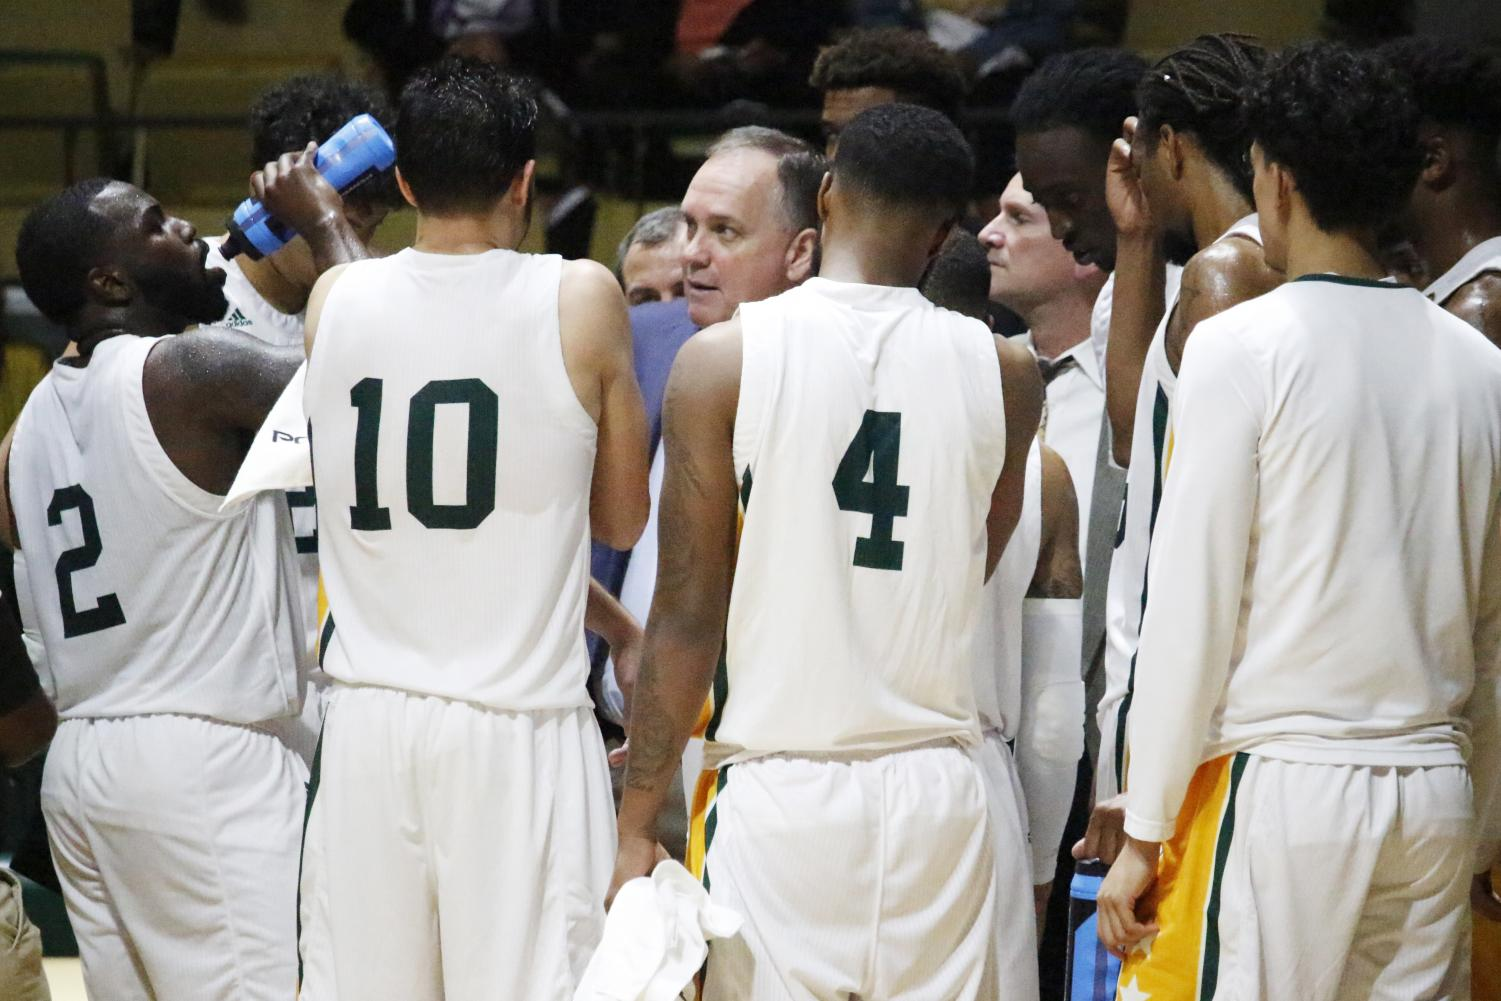 Jay Ladner, head coach of men's basketball, talks to his players about their game plan. Games include coaches giving their players a pep talk to rally morale and win the match.